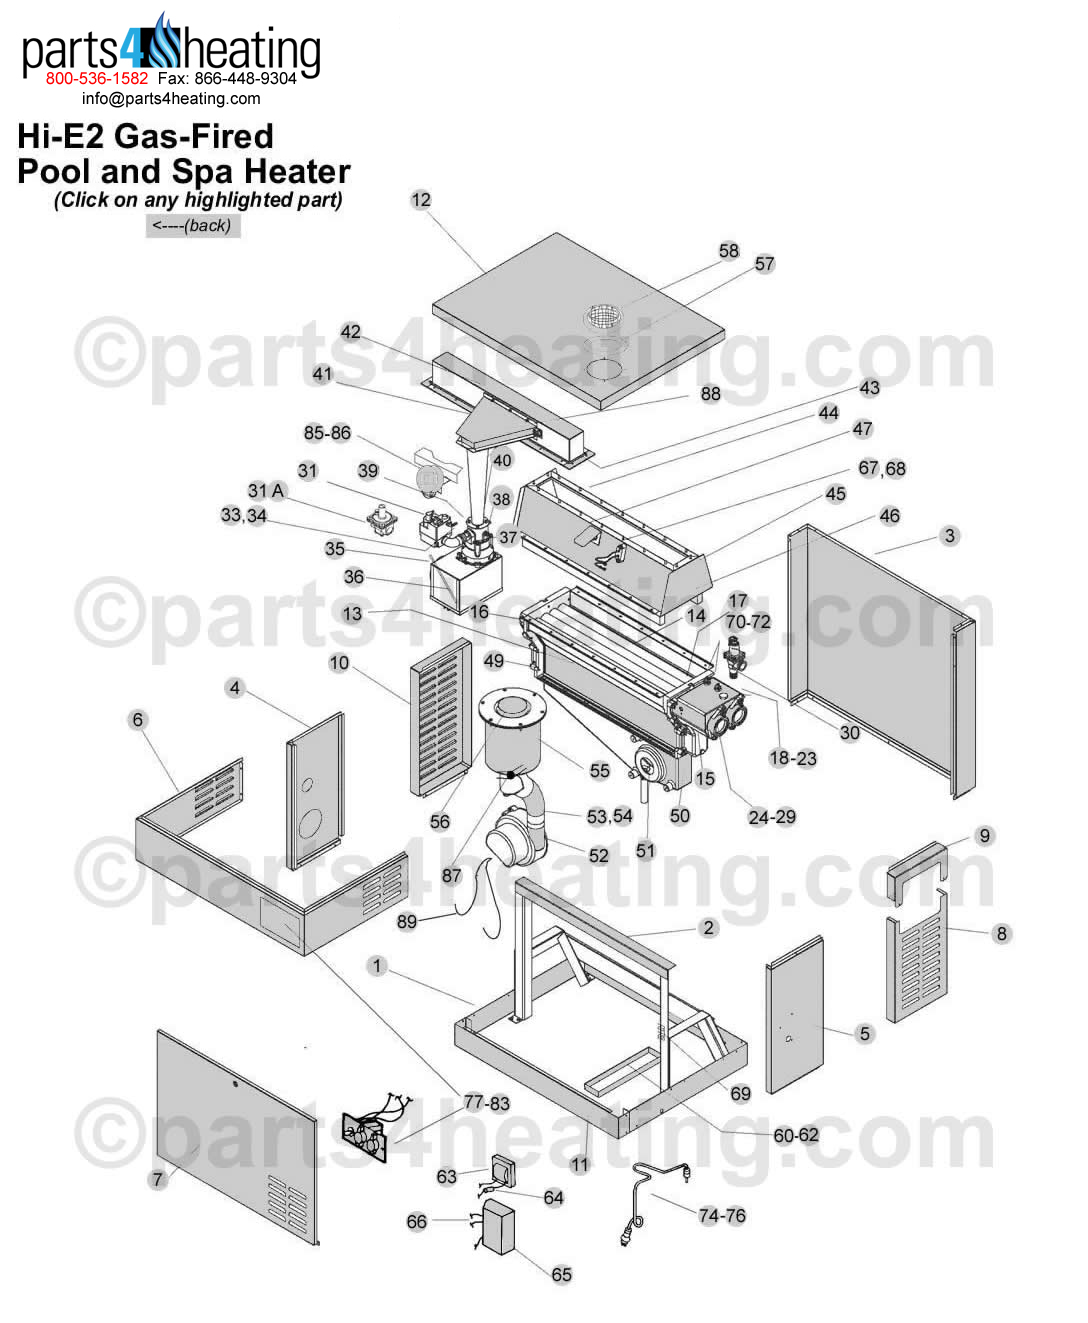 Jandy HiE2 Gas Heater Clickable Parts Diagram